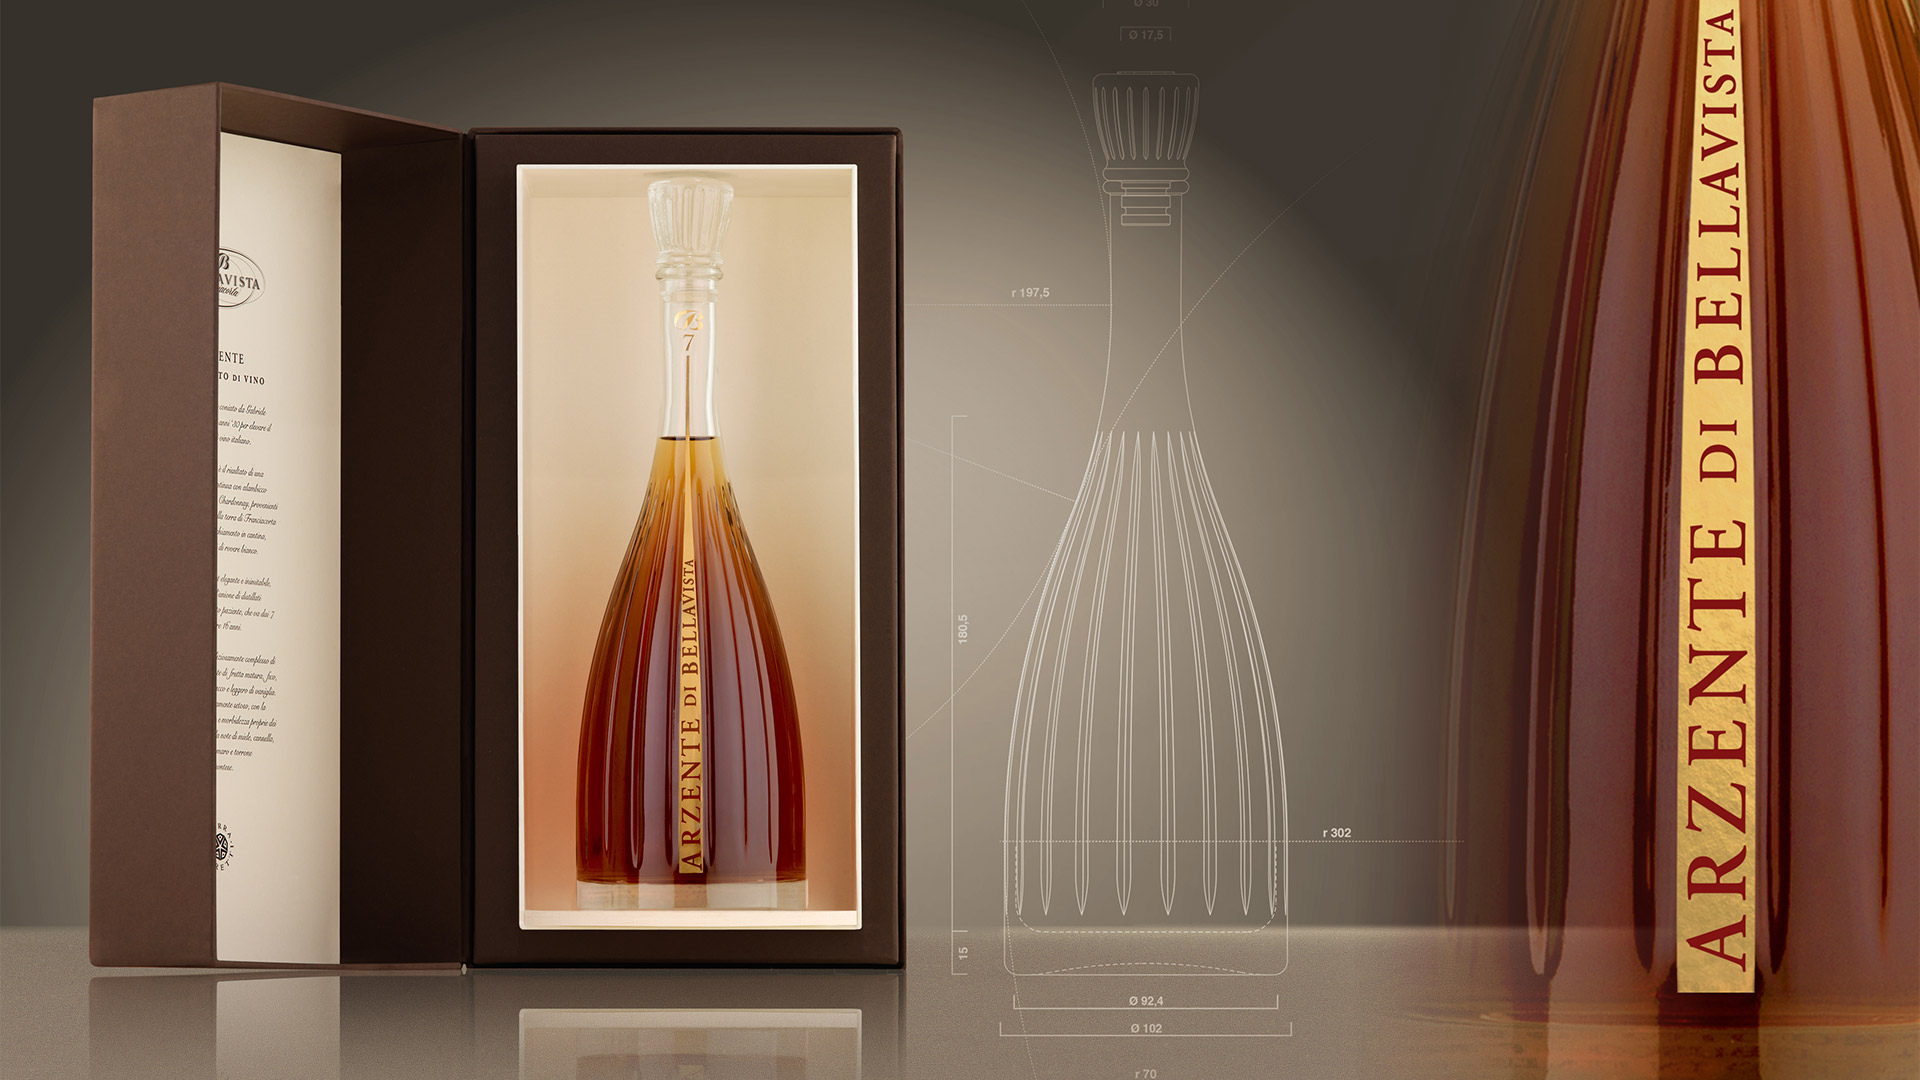 Terra Moretti Arzente bottle design